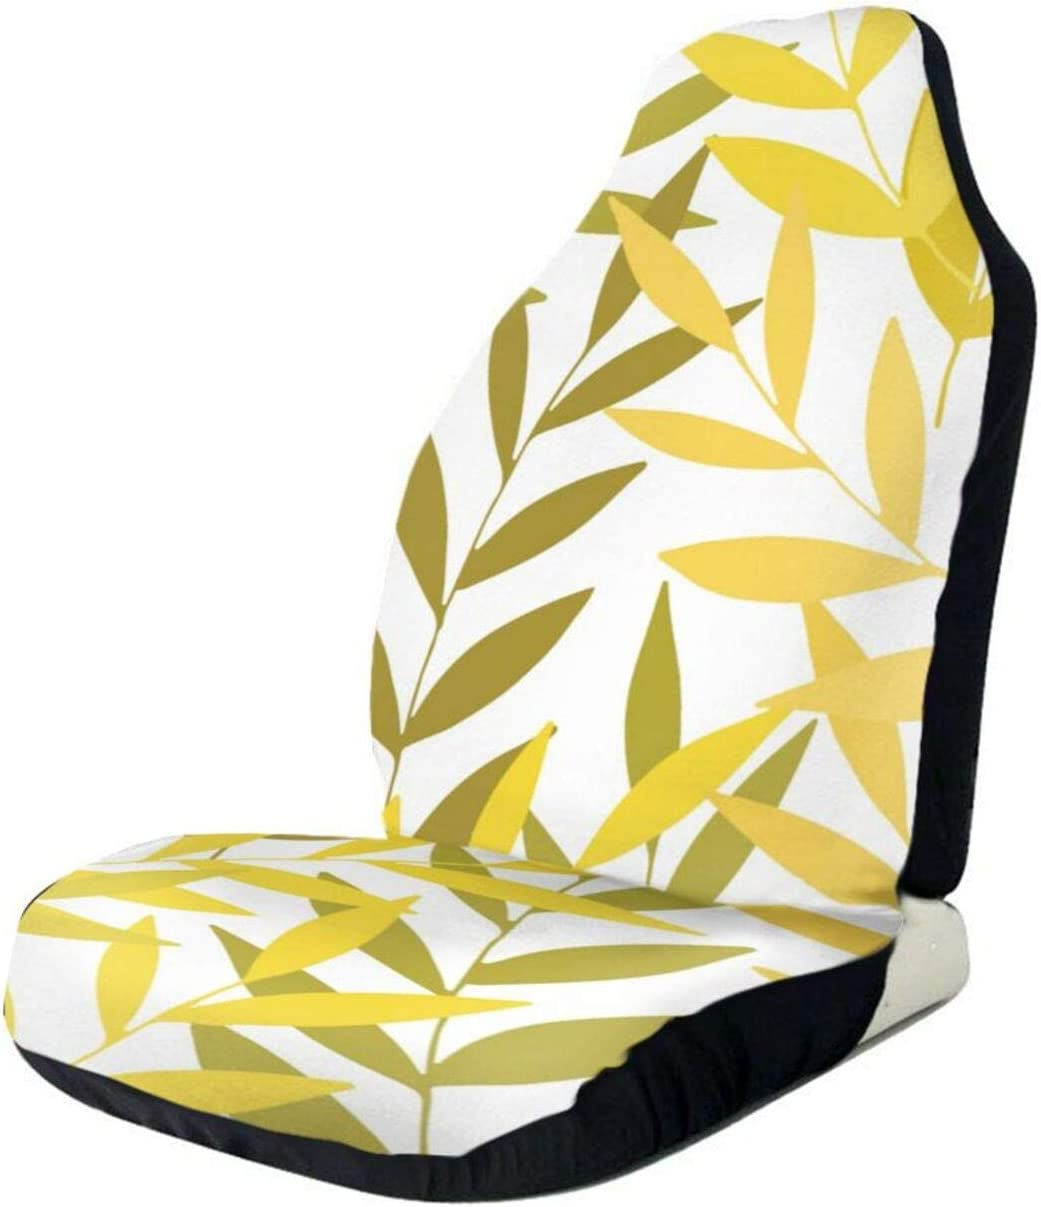 Gold Leaves Jacksonville Mall Lovely Front Car Over item handling ☆ Seat Covers Seats